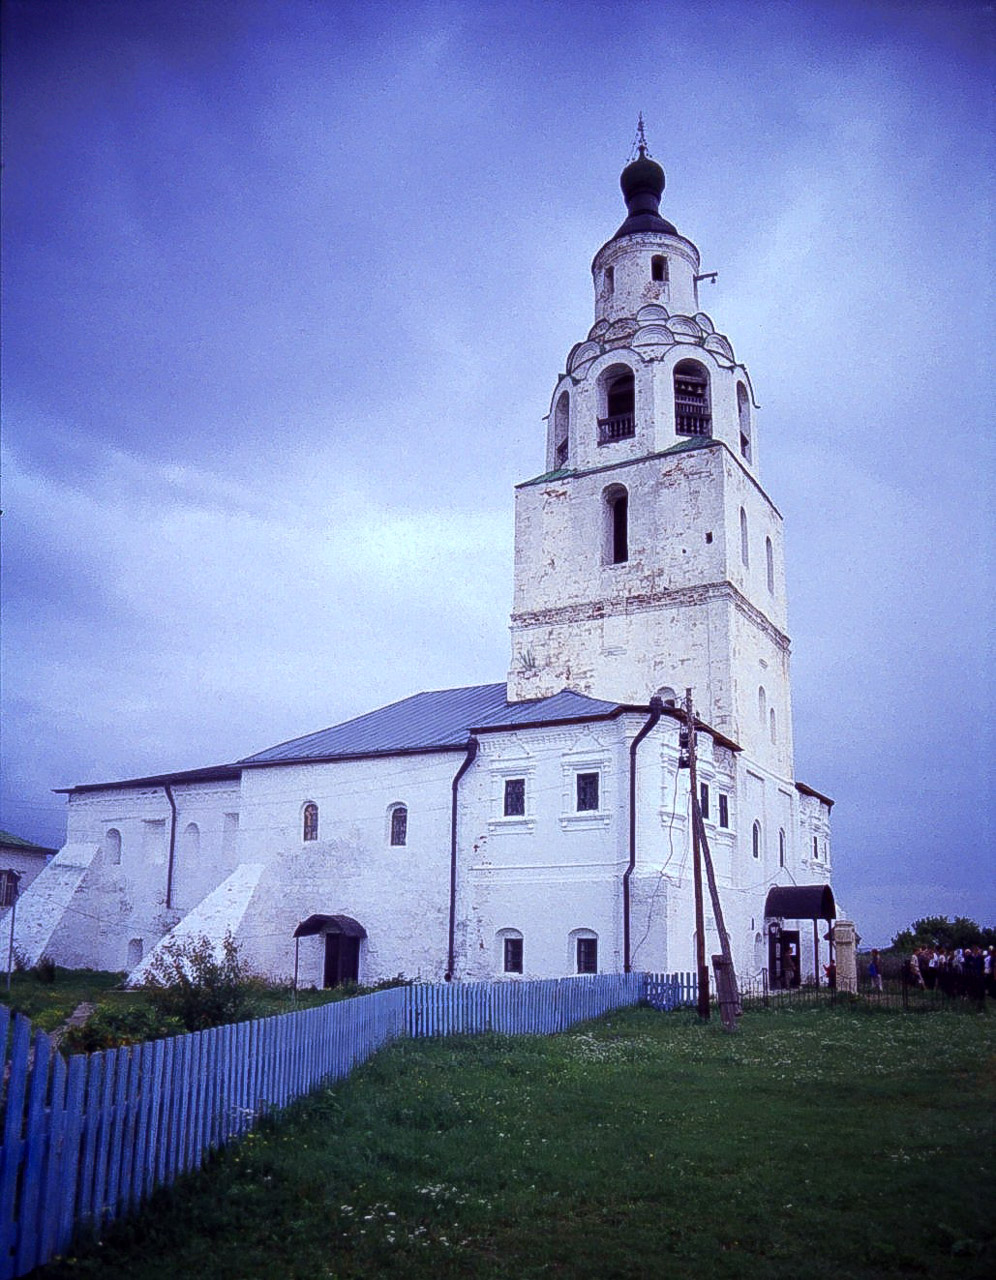 Monastery church in Tartastan, Russia. Wolga. Shot on 35mm Film then scanned. This was shot in August, 2007